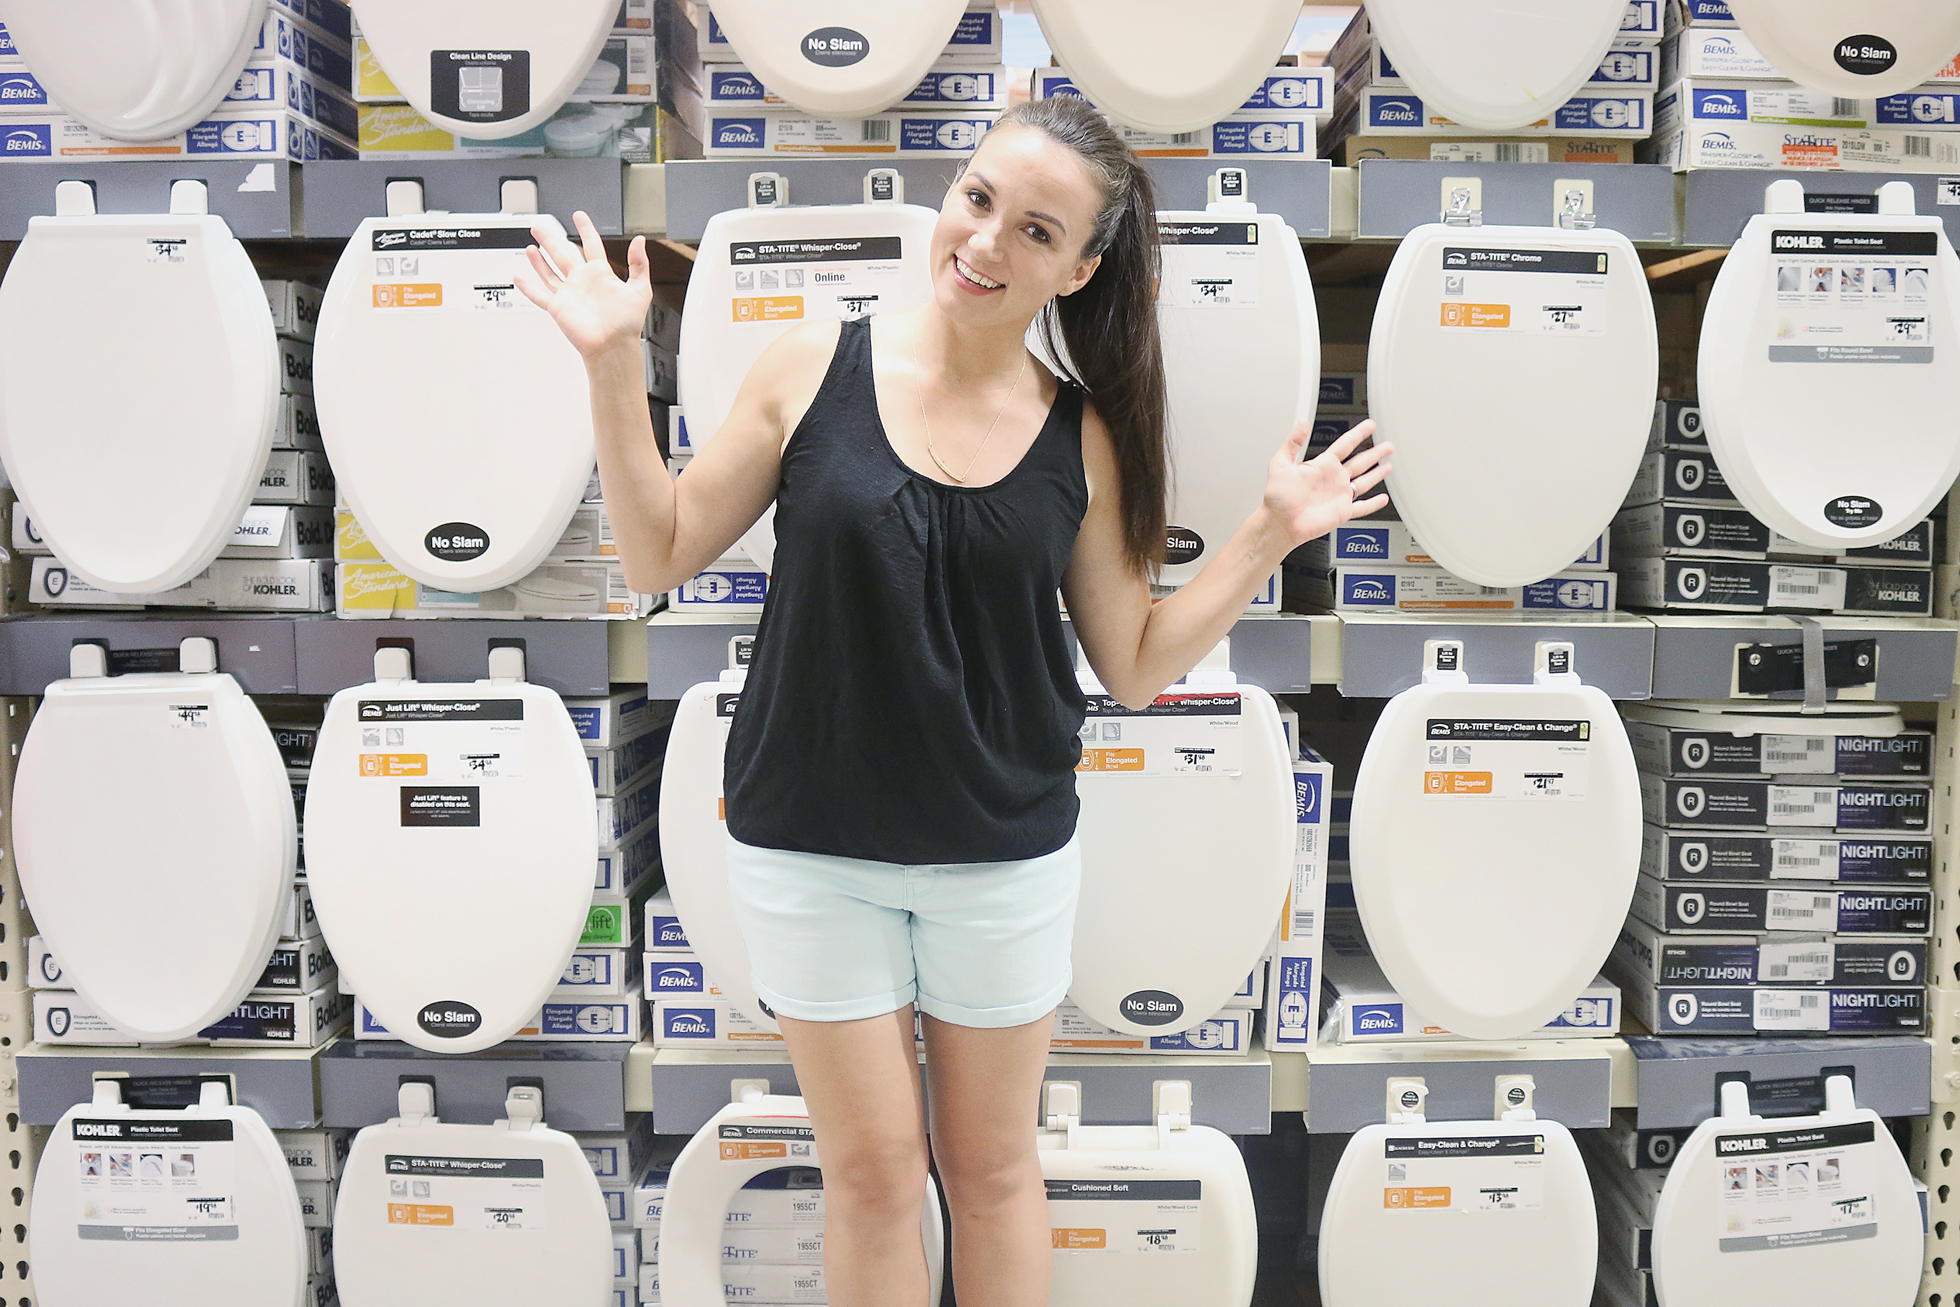 Woman standing in front of toilet seats on a wall